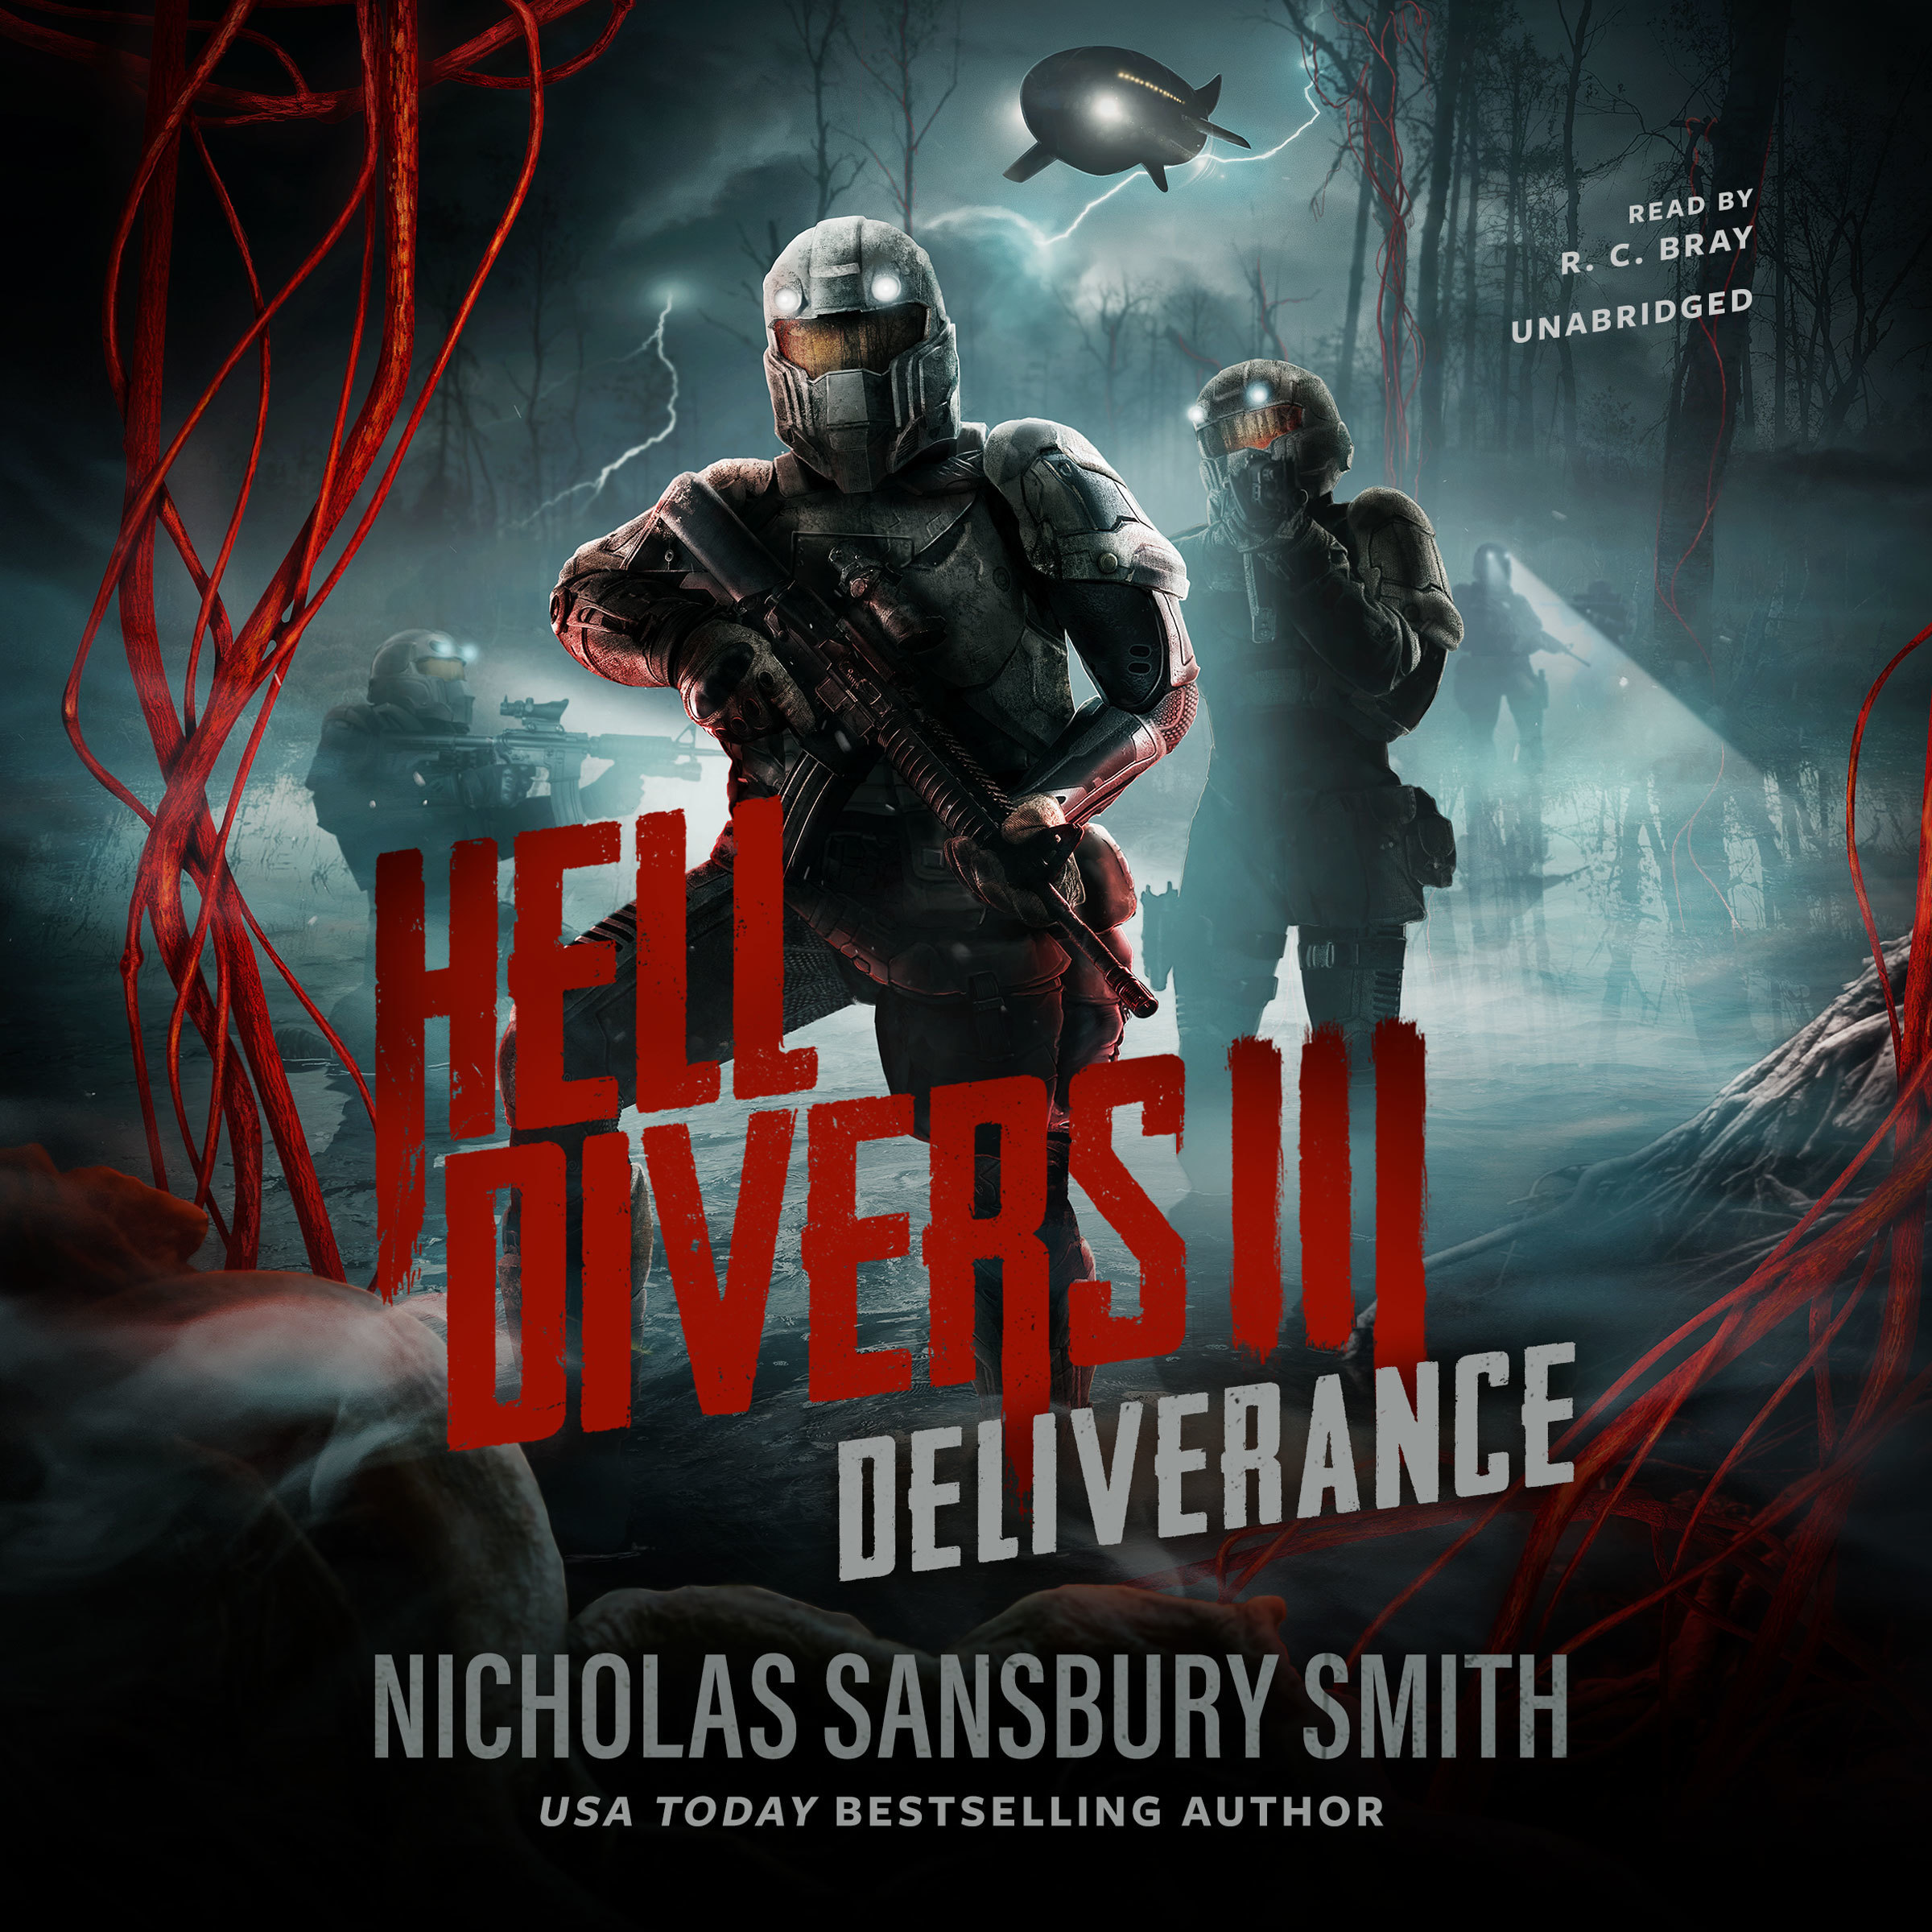 Printable Hell Divers III: Deliverance Audiobook Cover Art